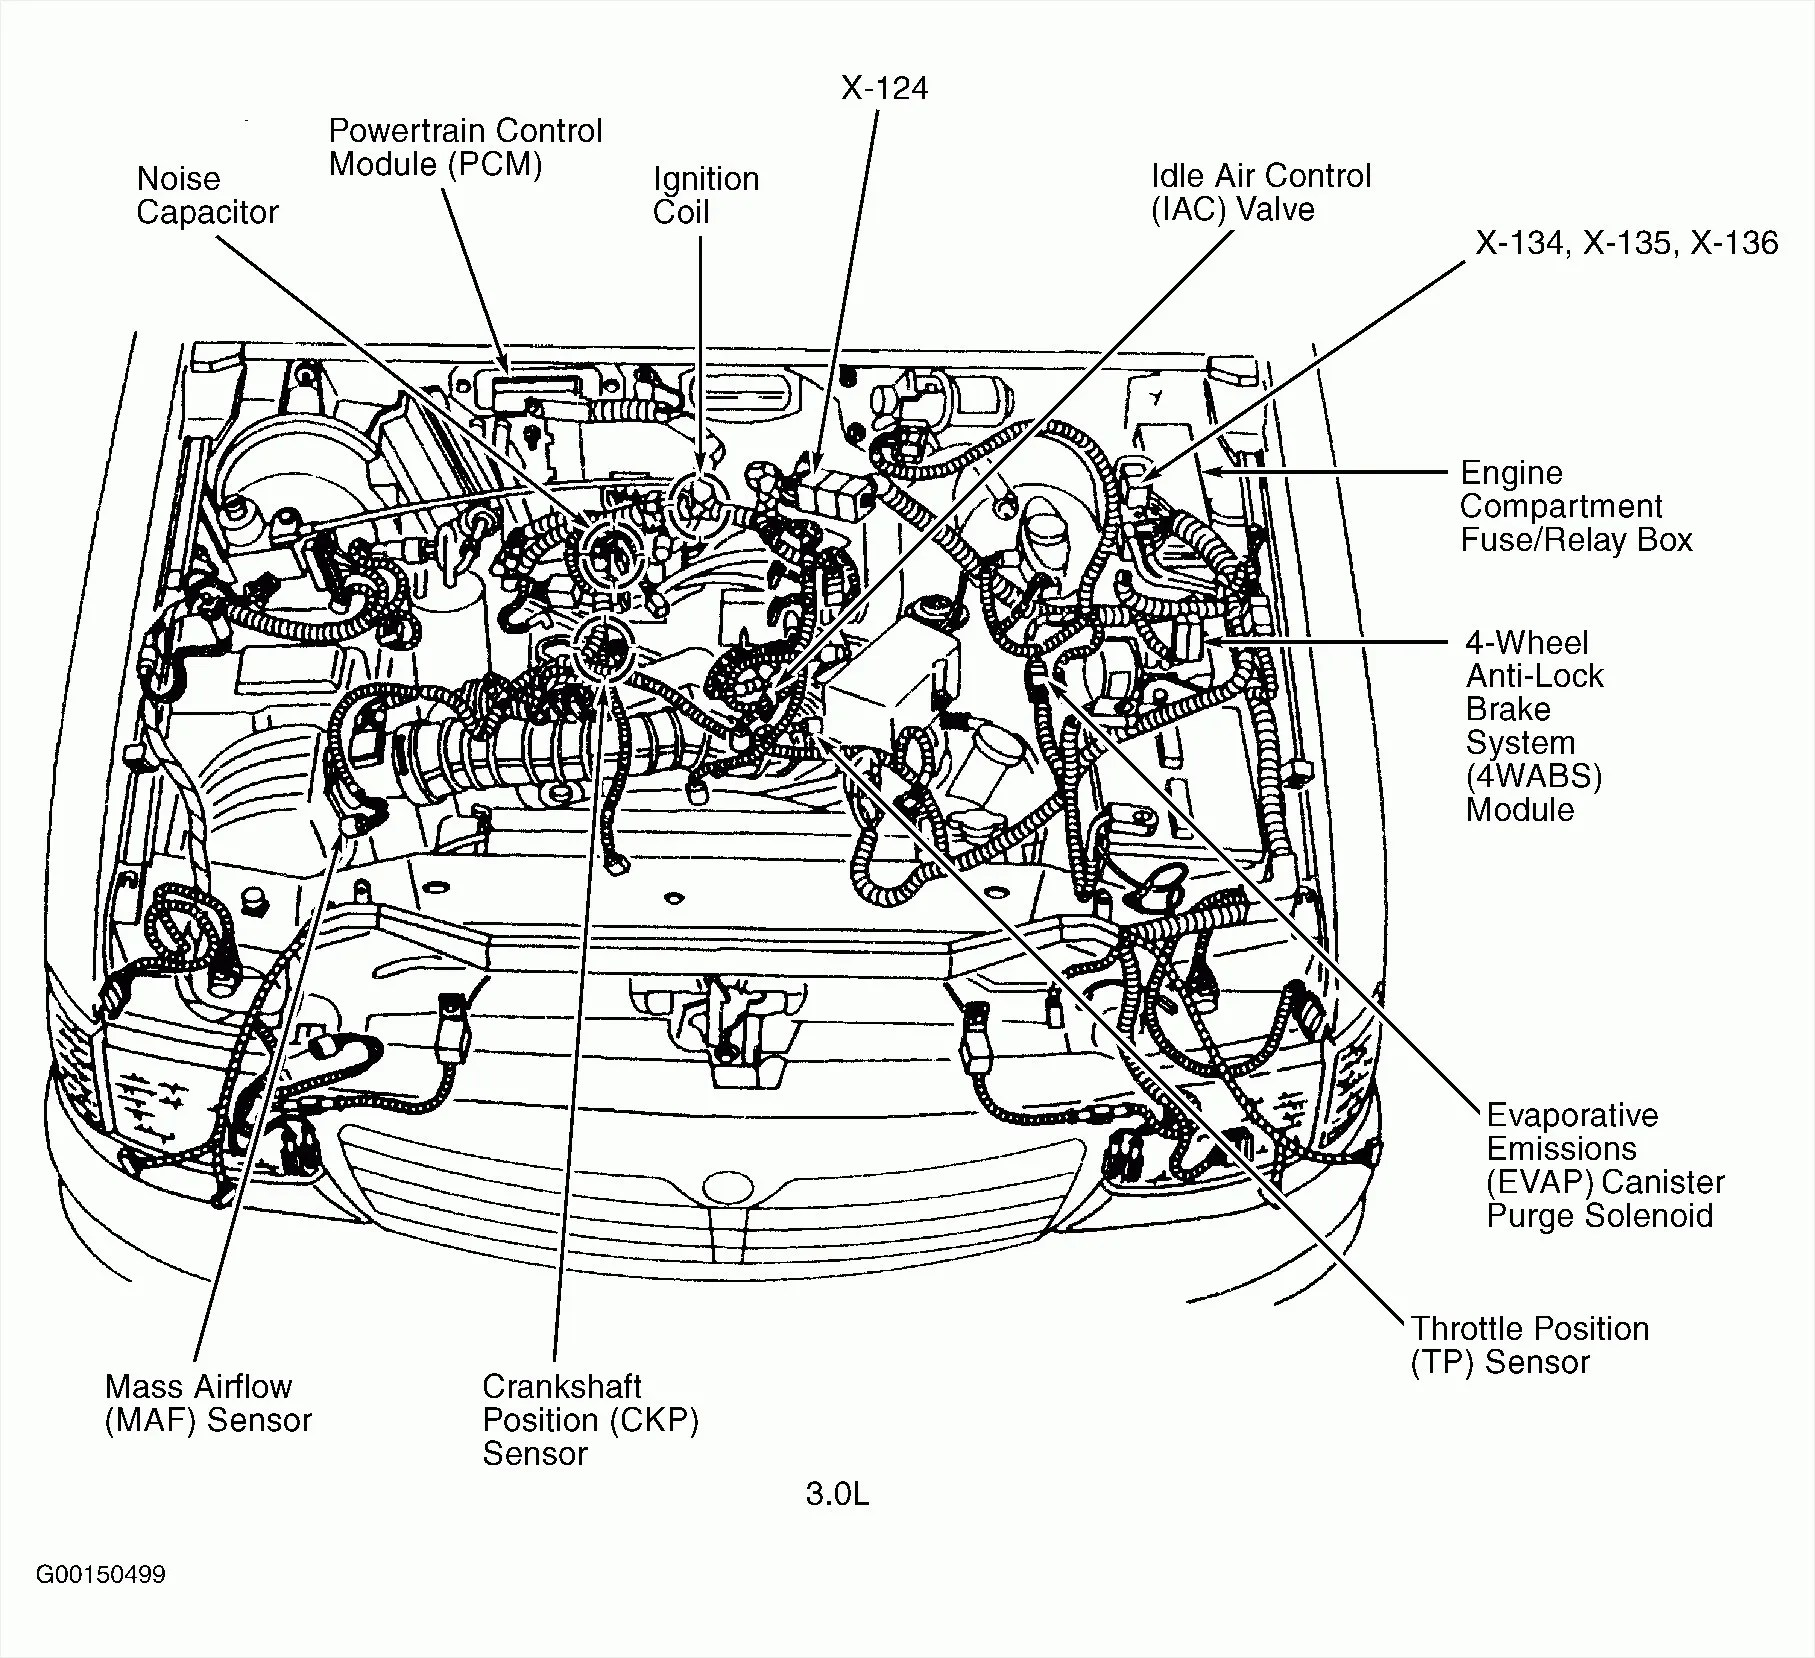 hight resolution of 2010 jetta engine diagram wiring diagram list 2010 vw jetta tdi engine diagram 2010 jetta engine diagram